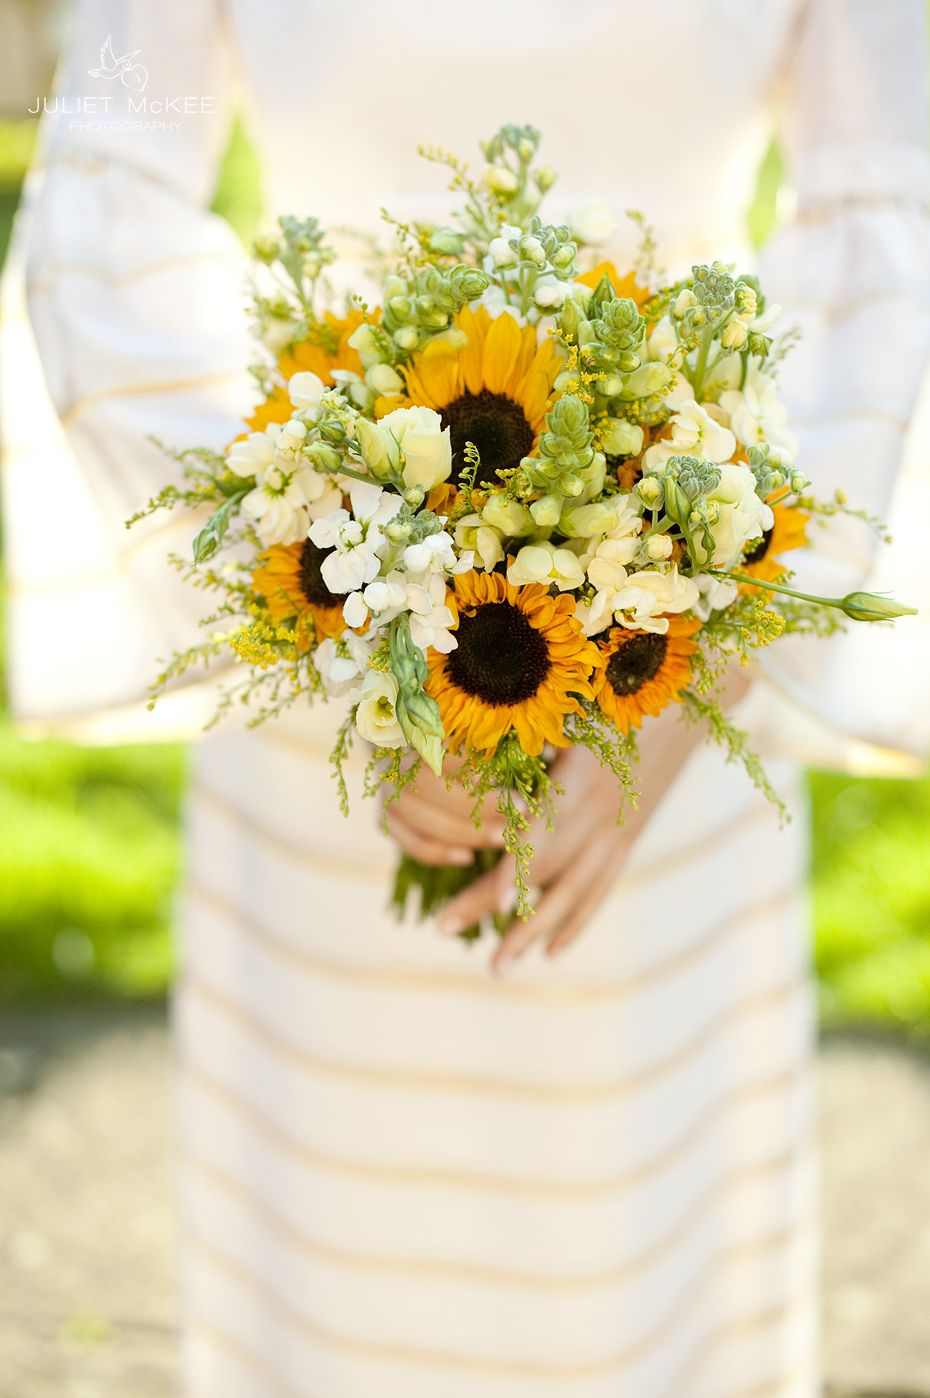 Sunflower Wedding Flower Ideas In Season Now Pinterest